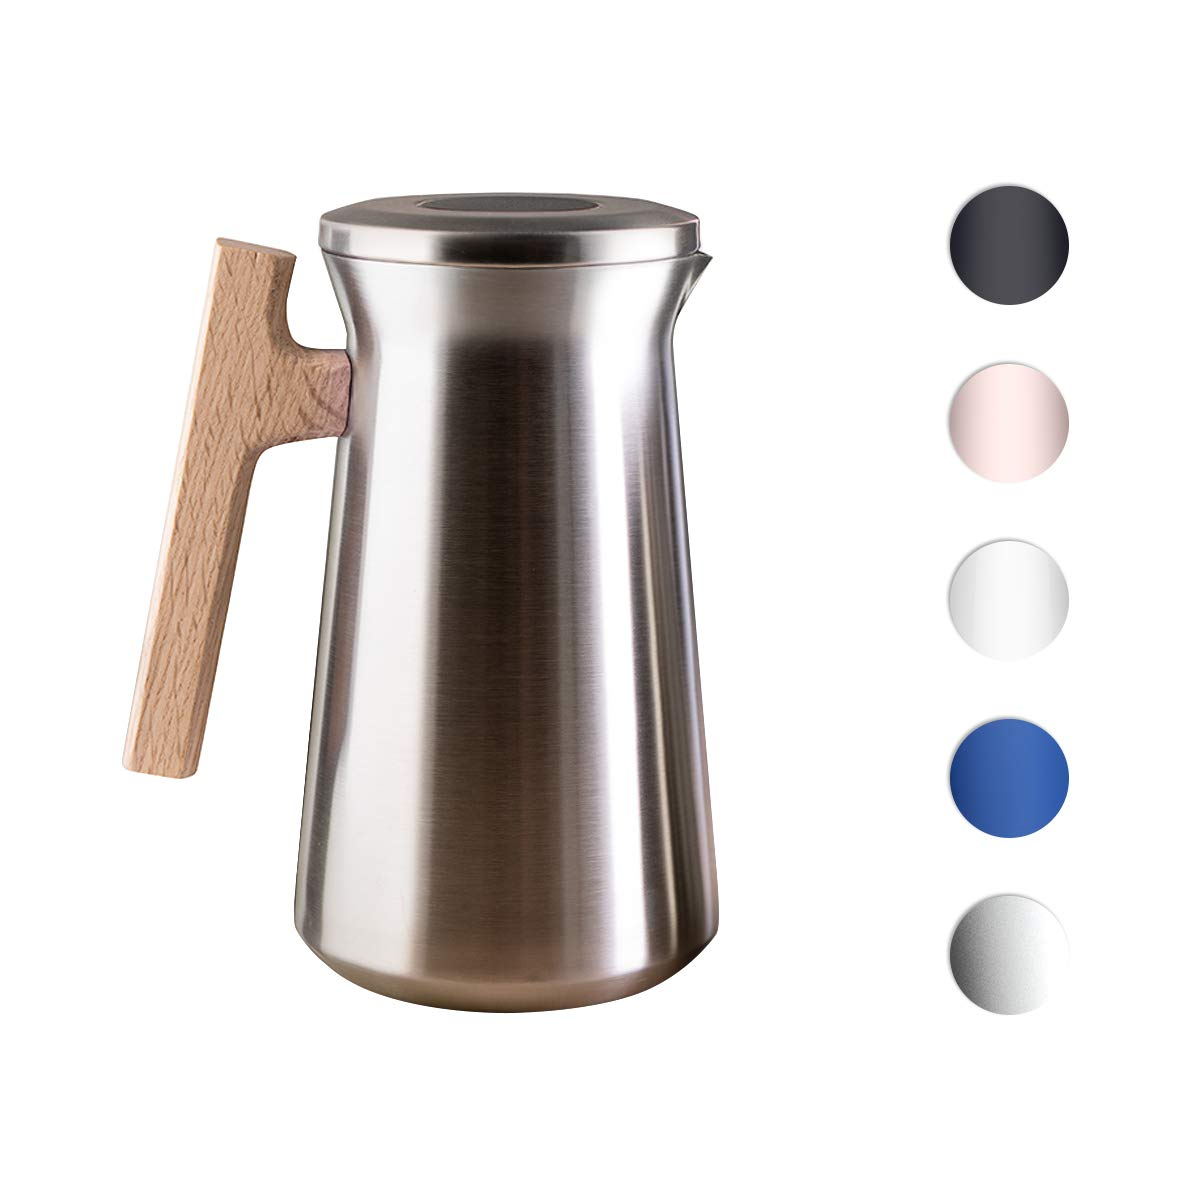 SDREAM Coffee Carafe Thermal For Kettle Stainless Steel 34 Oz Double Walled Vacuum Insulation Hot Beverage or Tea, Sliver, 34 oz by SDREAM (Image #1)